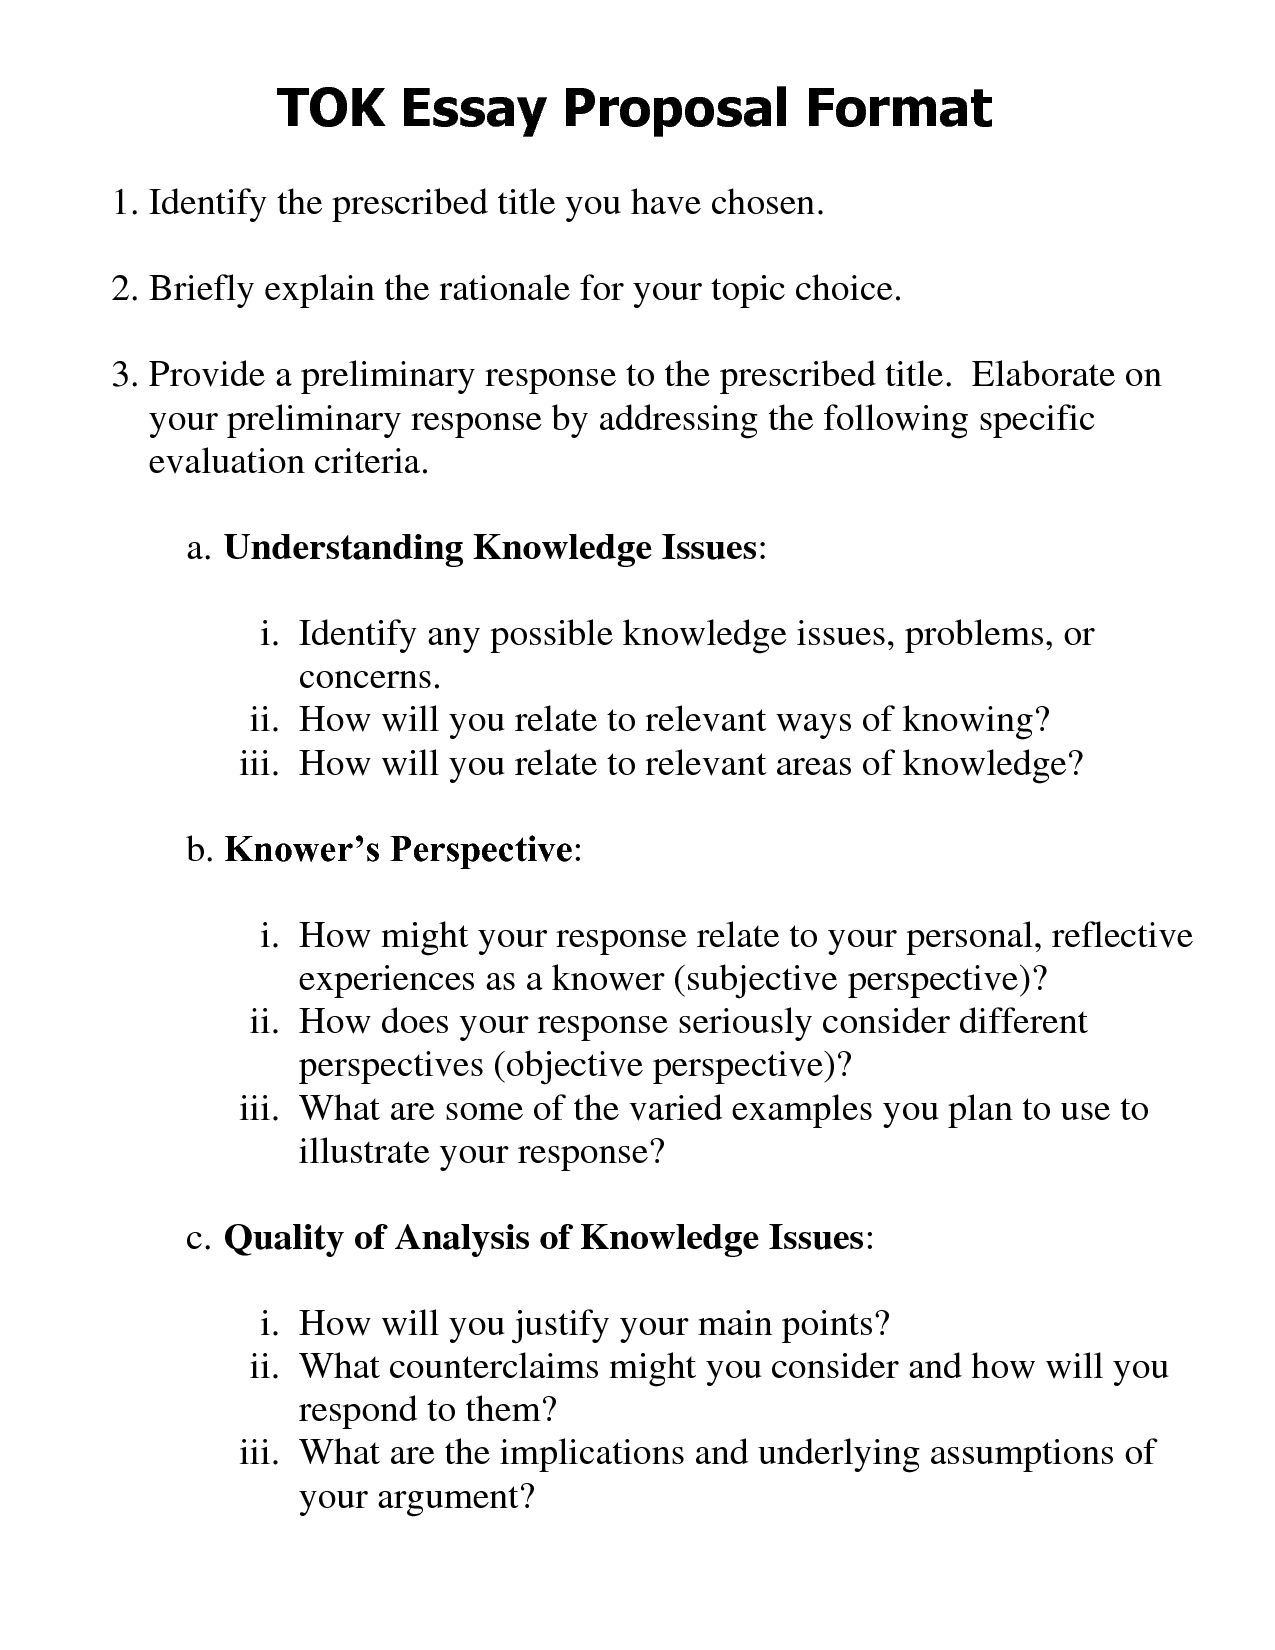 How To Write An Essay Proposal A List Of Interesting Healthcare Topics For Your Essay Compare And Contrast Essay Sample Paper also Narrative Essay Examples For High School Fine Writing  Writing  Whitcoulls Proposal Essay Topic List  Essay Paper Writing Service